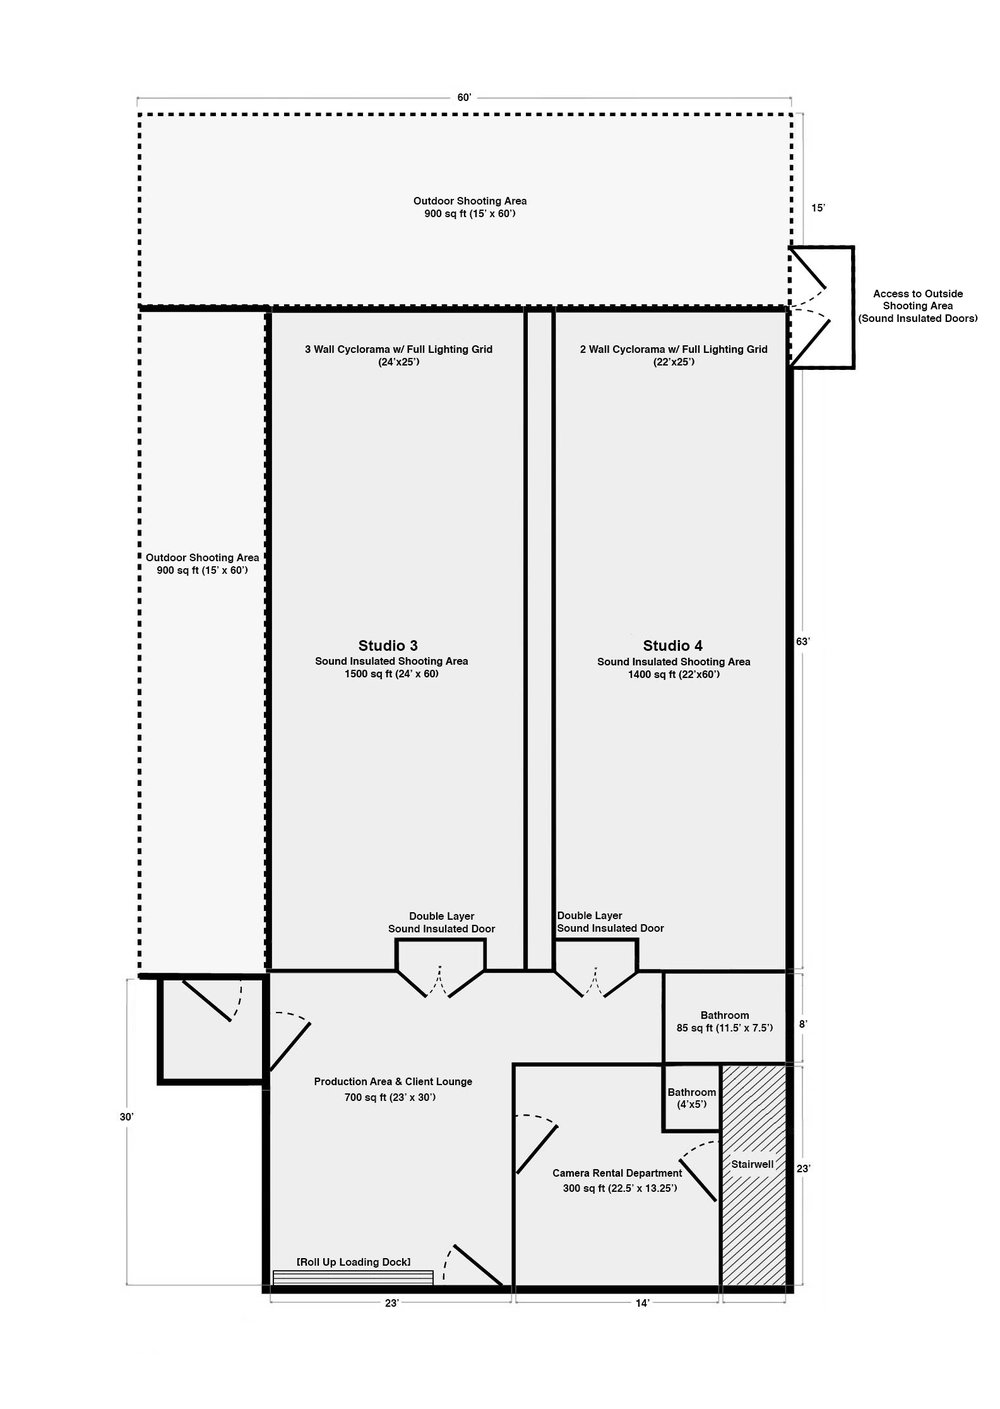 soundstage-studio-3-4-floor-plan-2.jpg